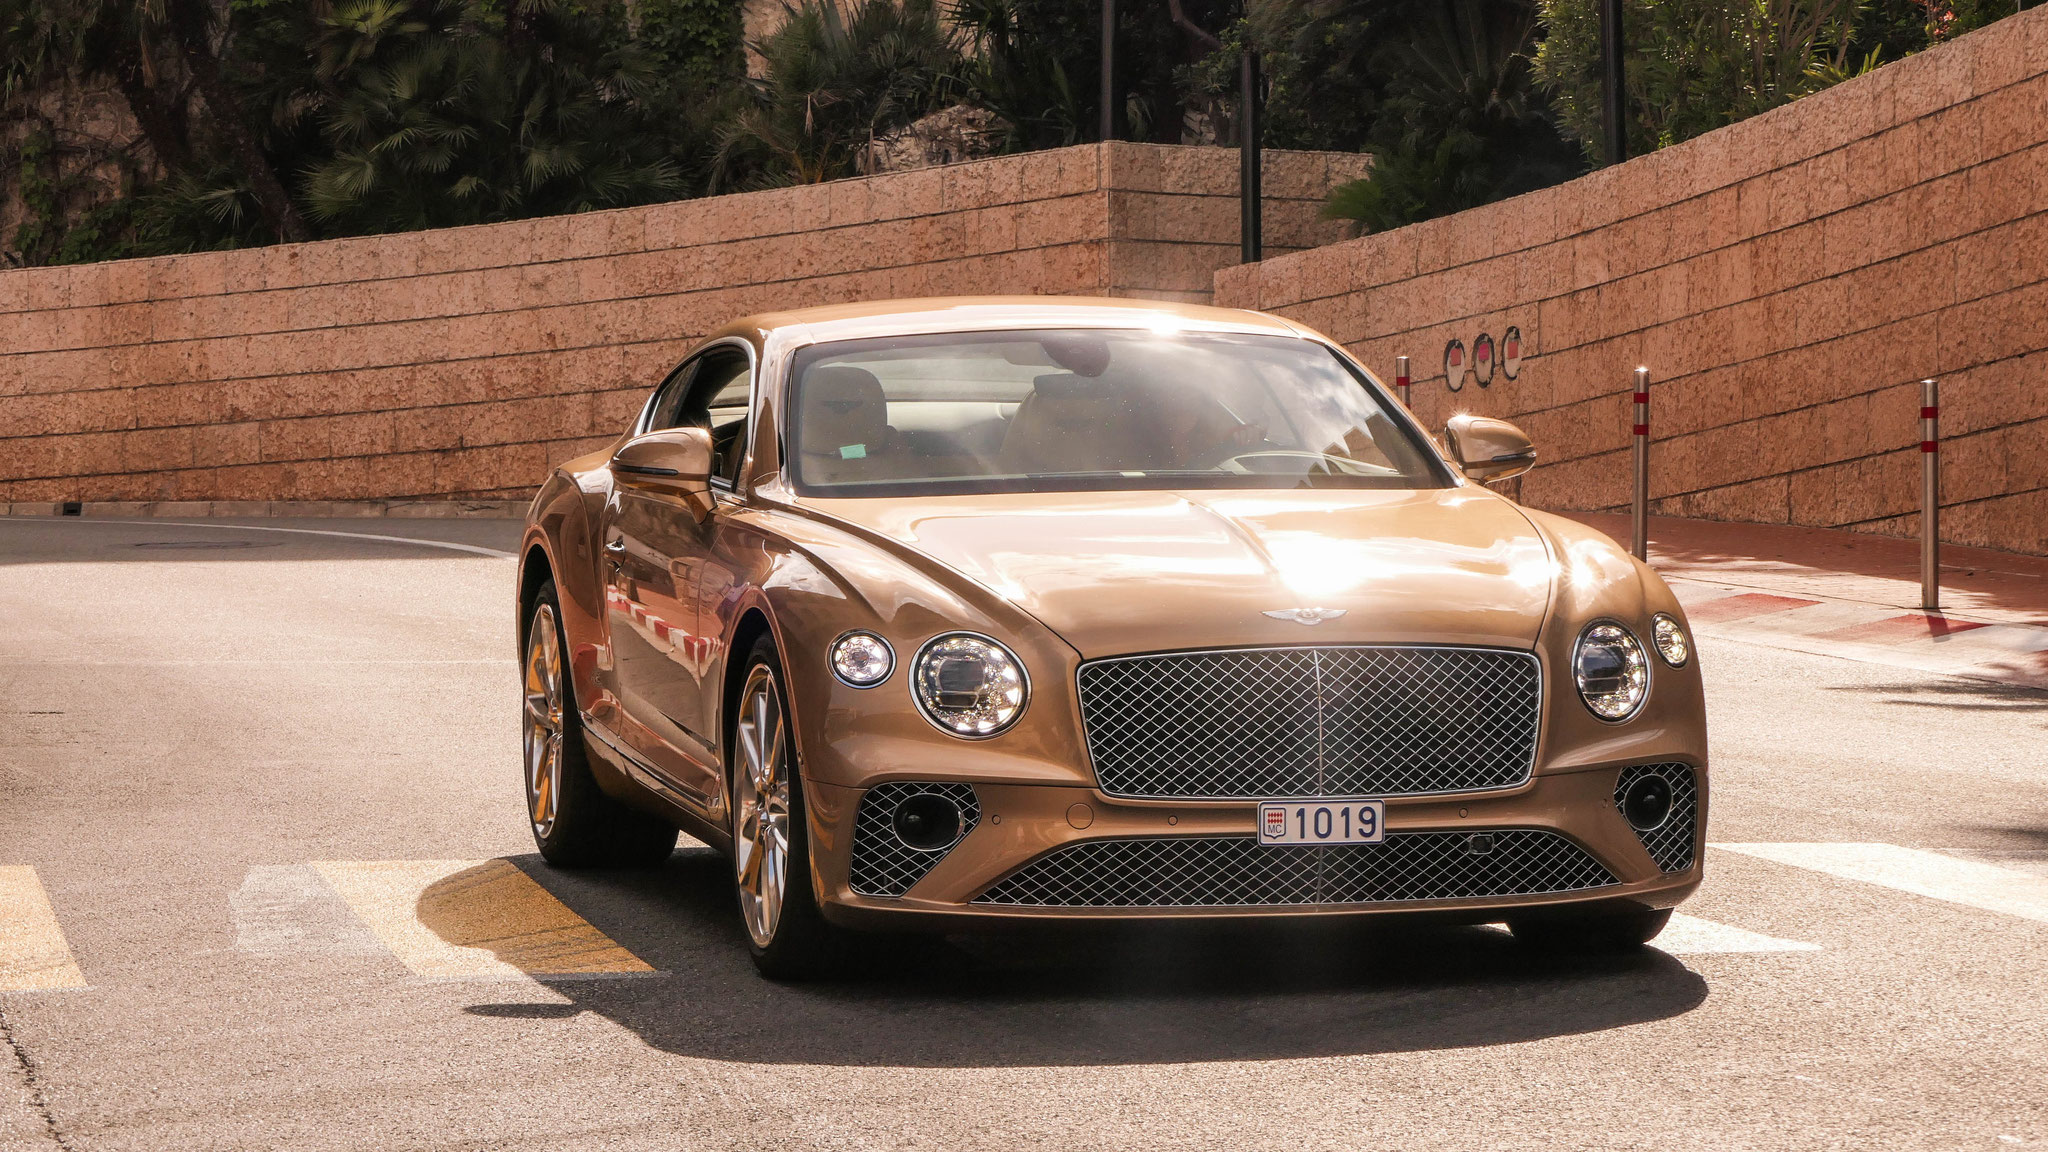 Bentley Continental GT - 1019 (MC)